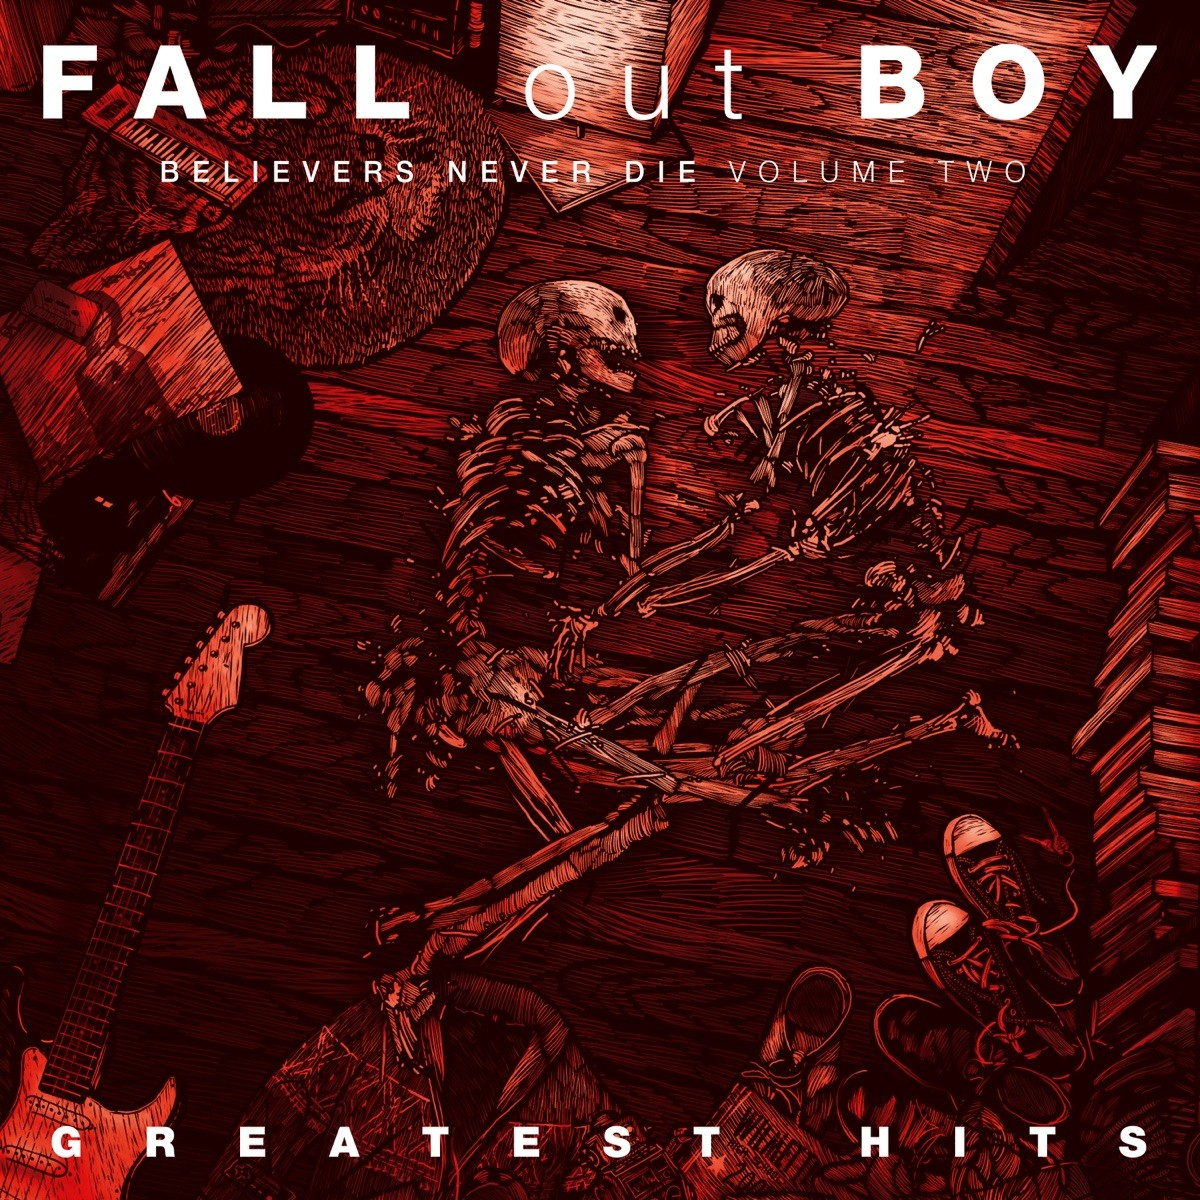 Fall Out Boy - Believers Never Die Volume Two - Greatest Hits CD - 060250836323